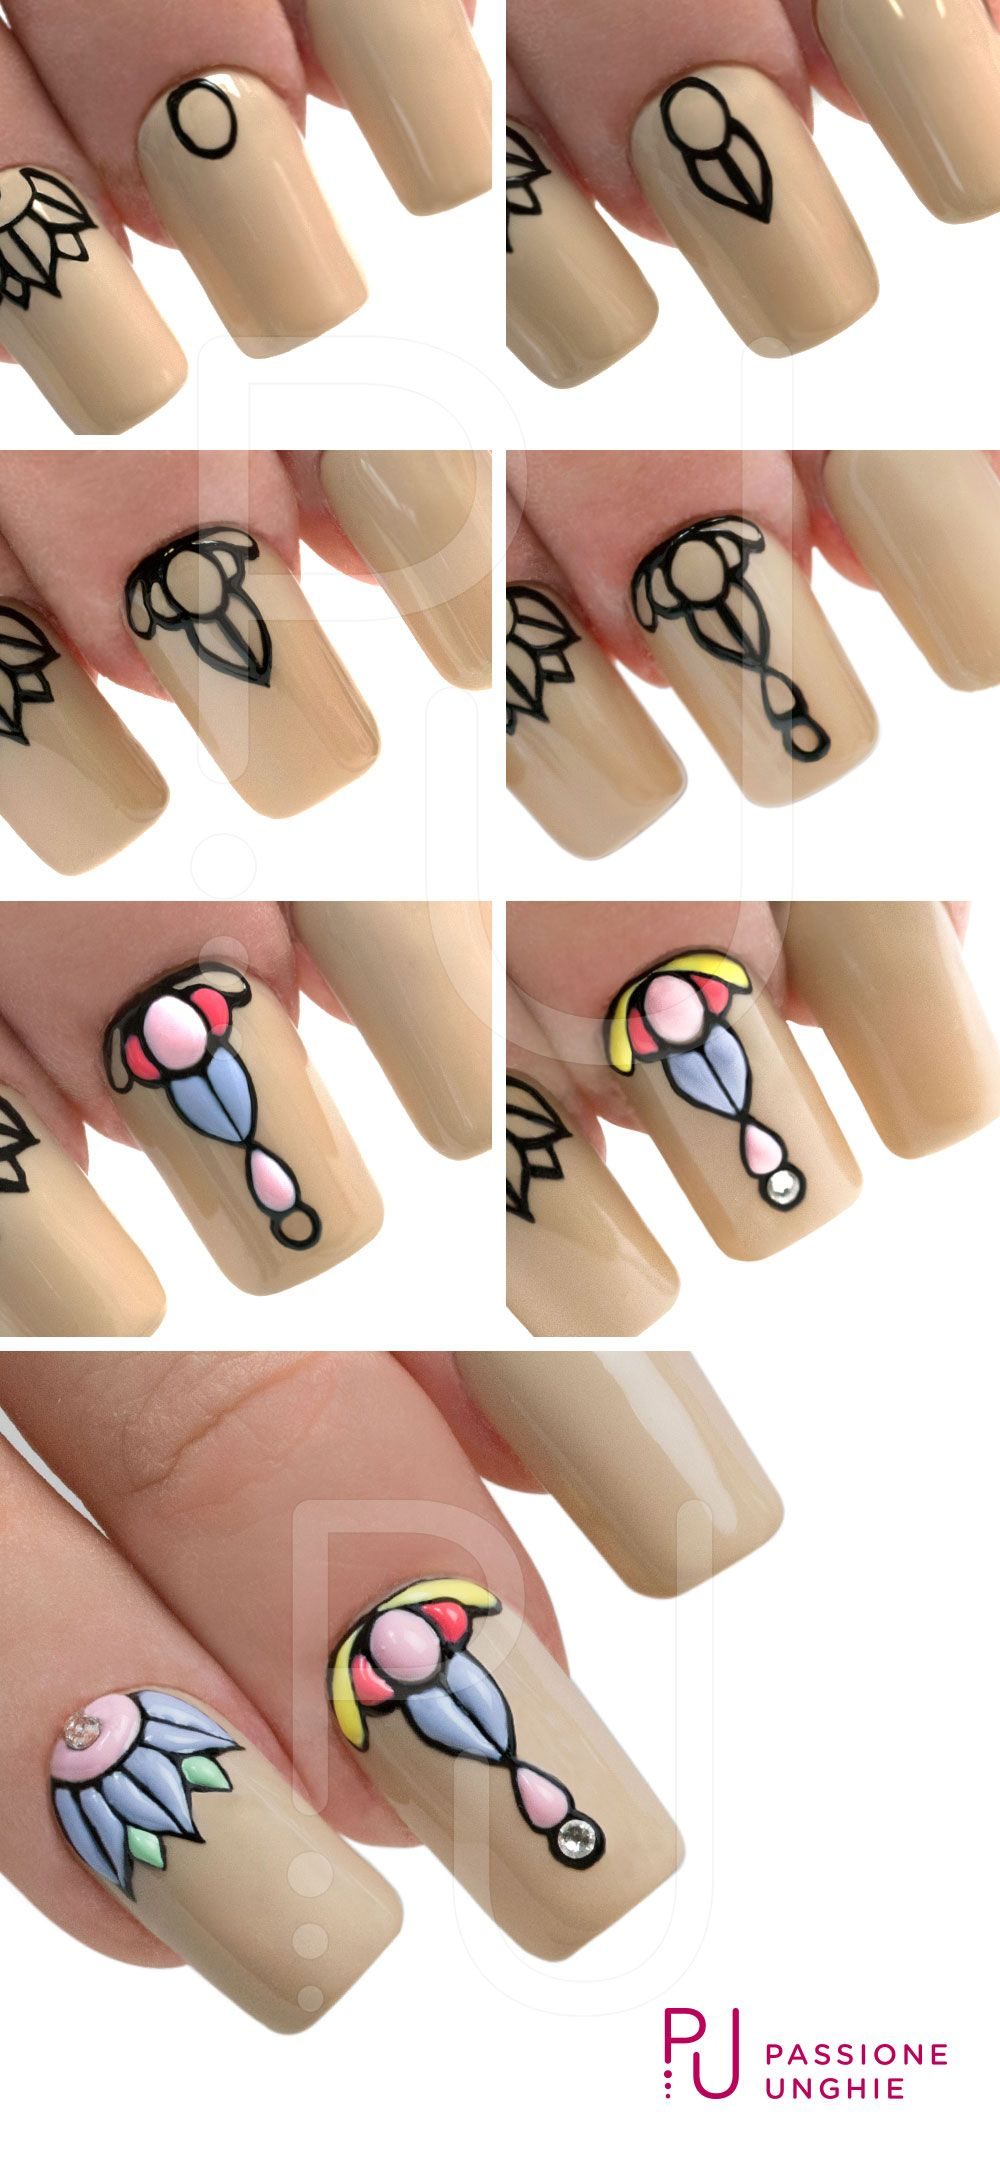 stained glass-esque nails